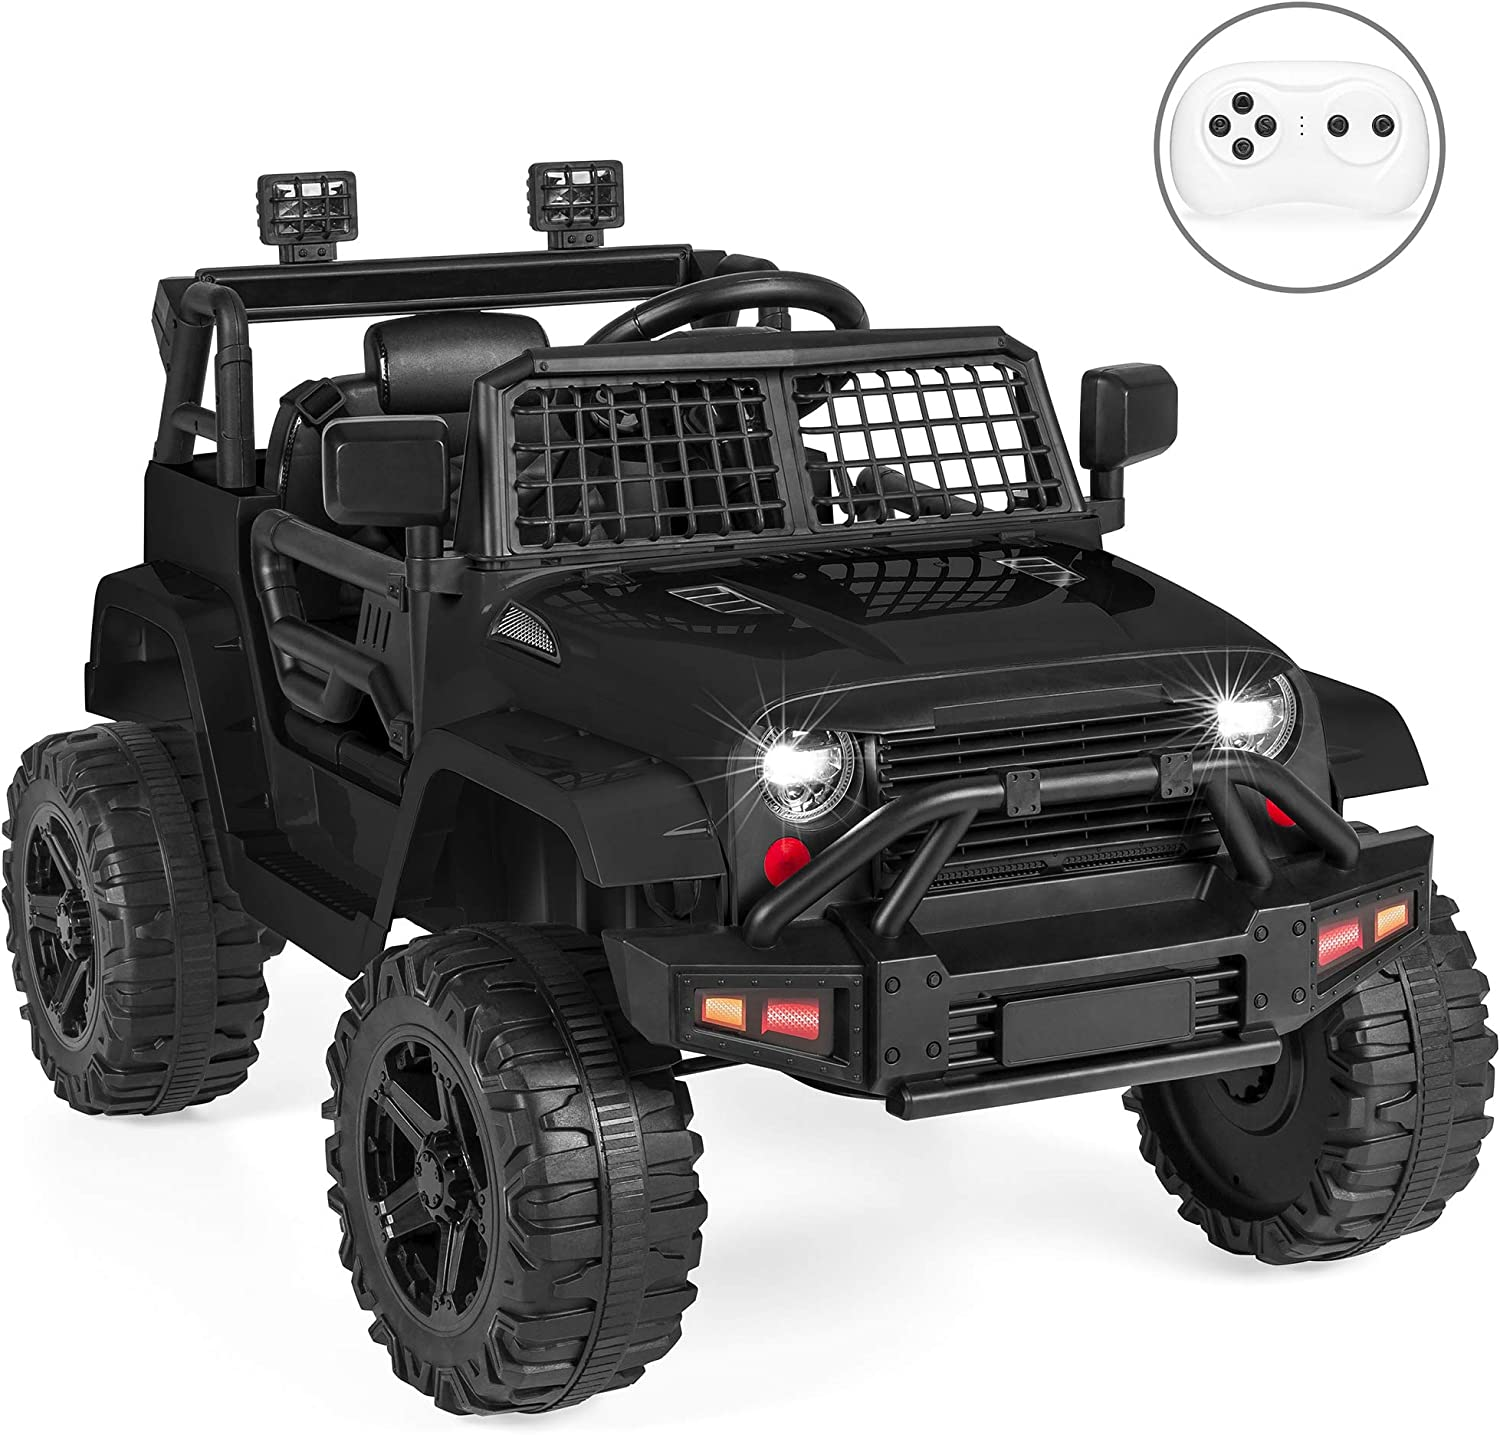 12V parent Remote Control car, Spring Suspension, LED Lights – Black